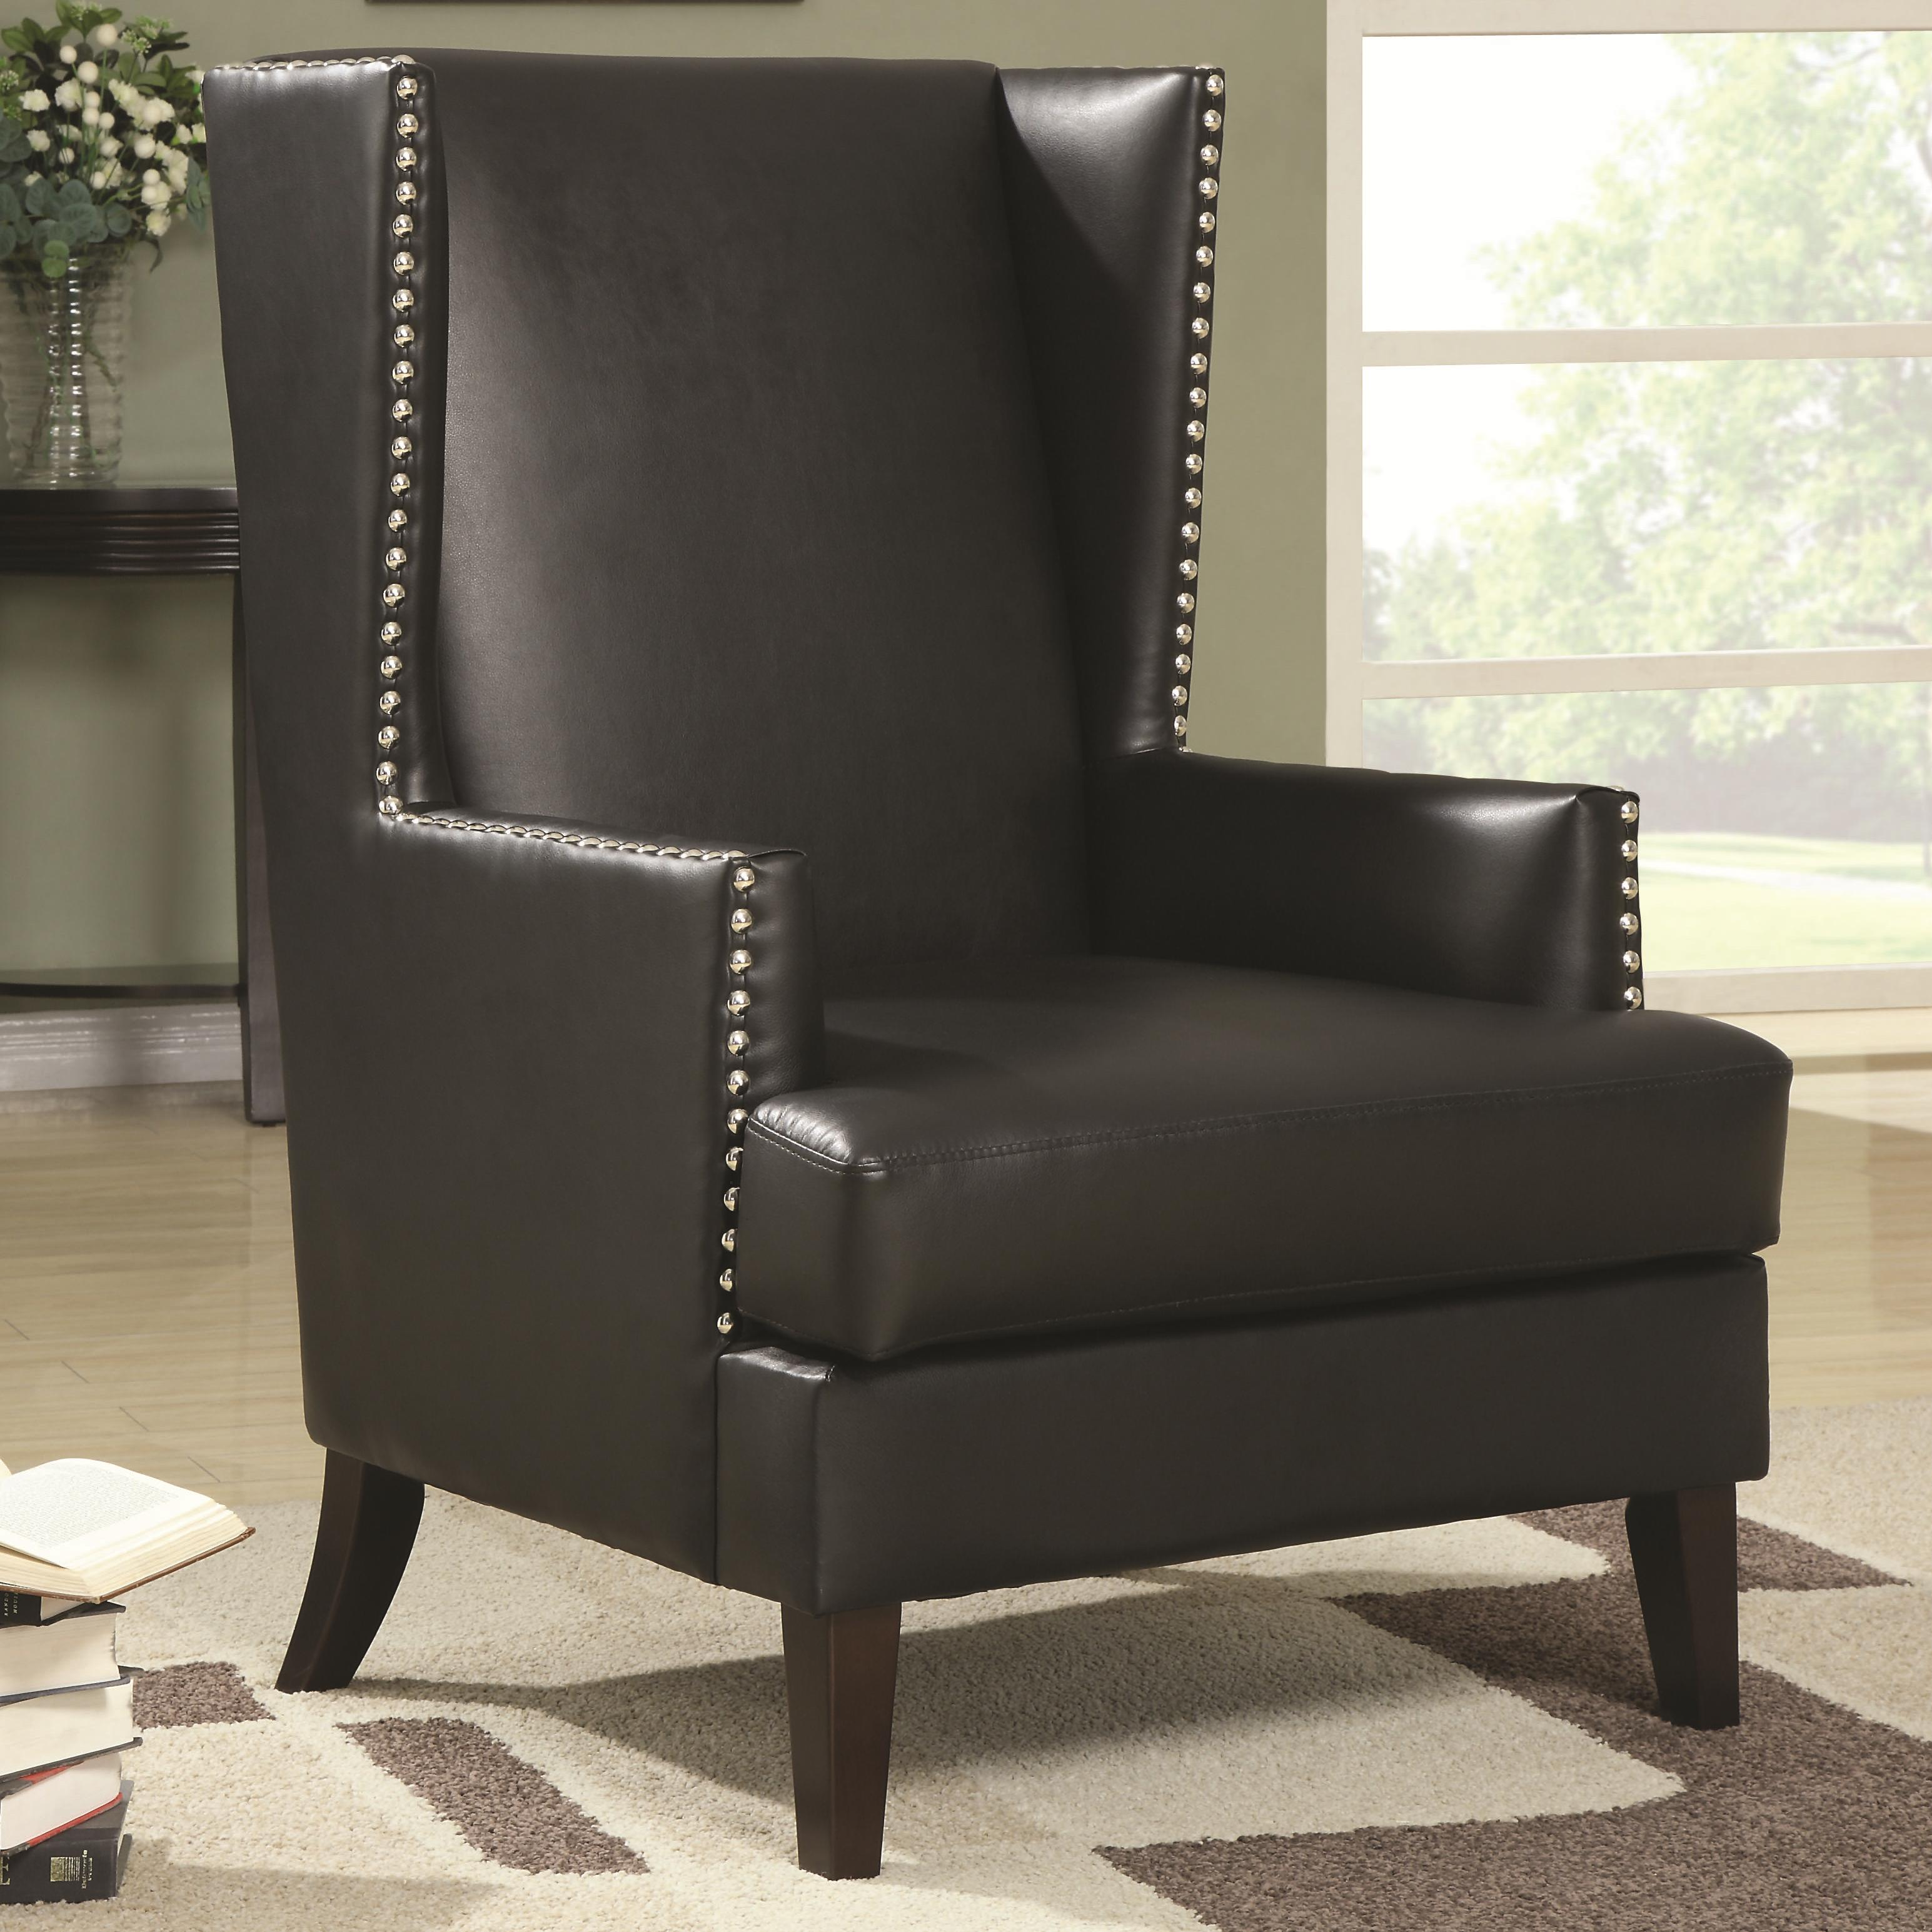 Coaster Accent Seating Wing Back Accent Chair In Transitional Furniture Style With Nail Head